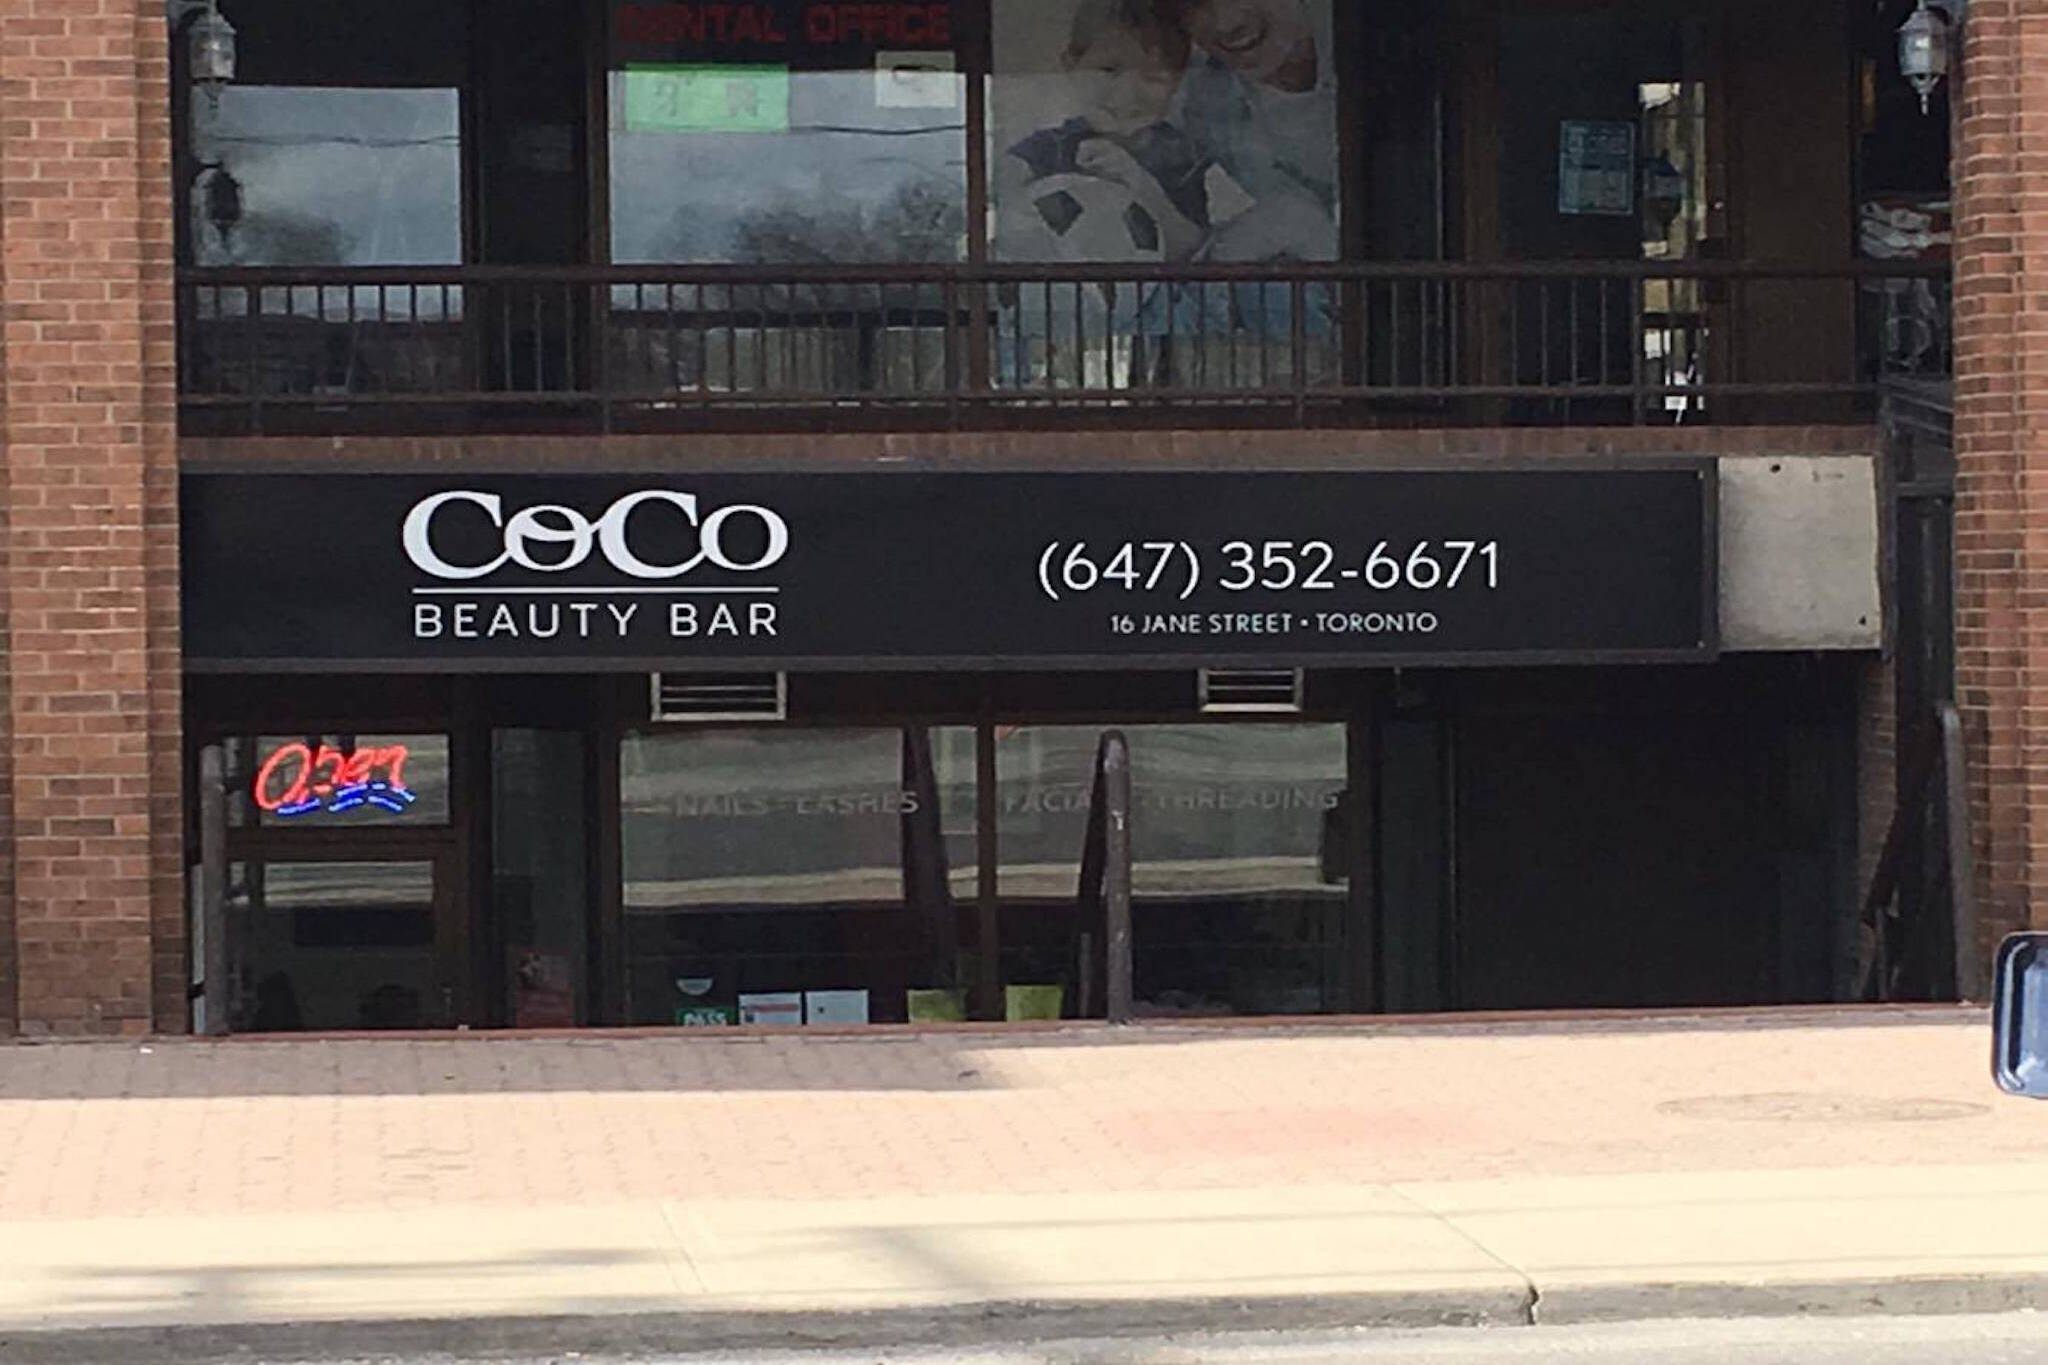 Coco Beauty Bar Toronto